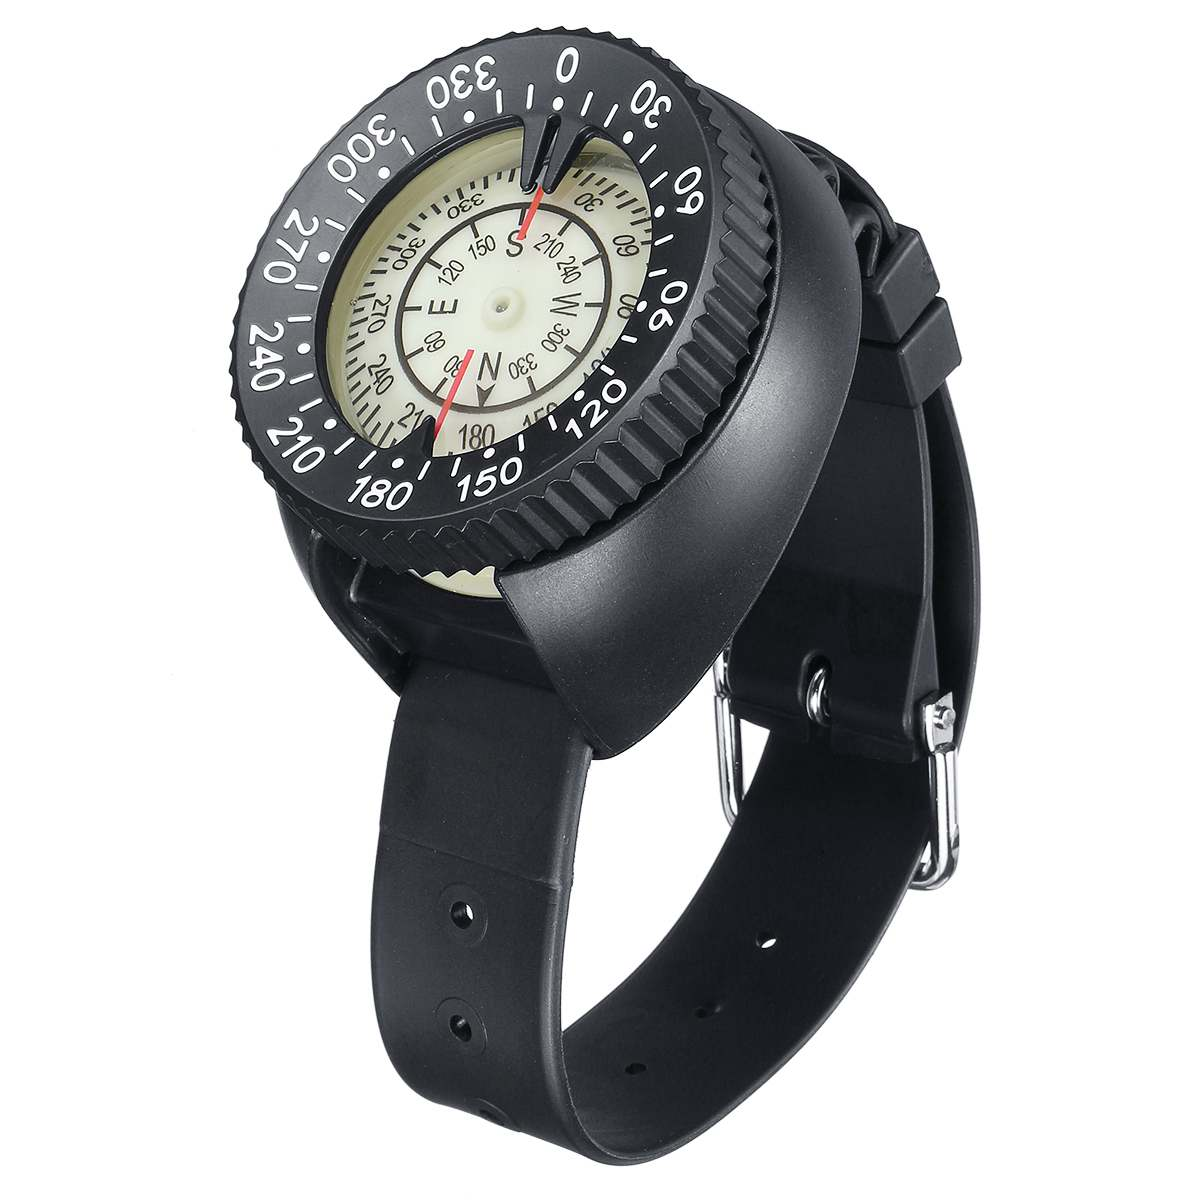 Diving Mini Wristwatch Swimming Scuba Compass Waterproof Fluorescent Professional Compass Watch Underwater Sports Accessories